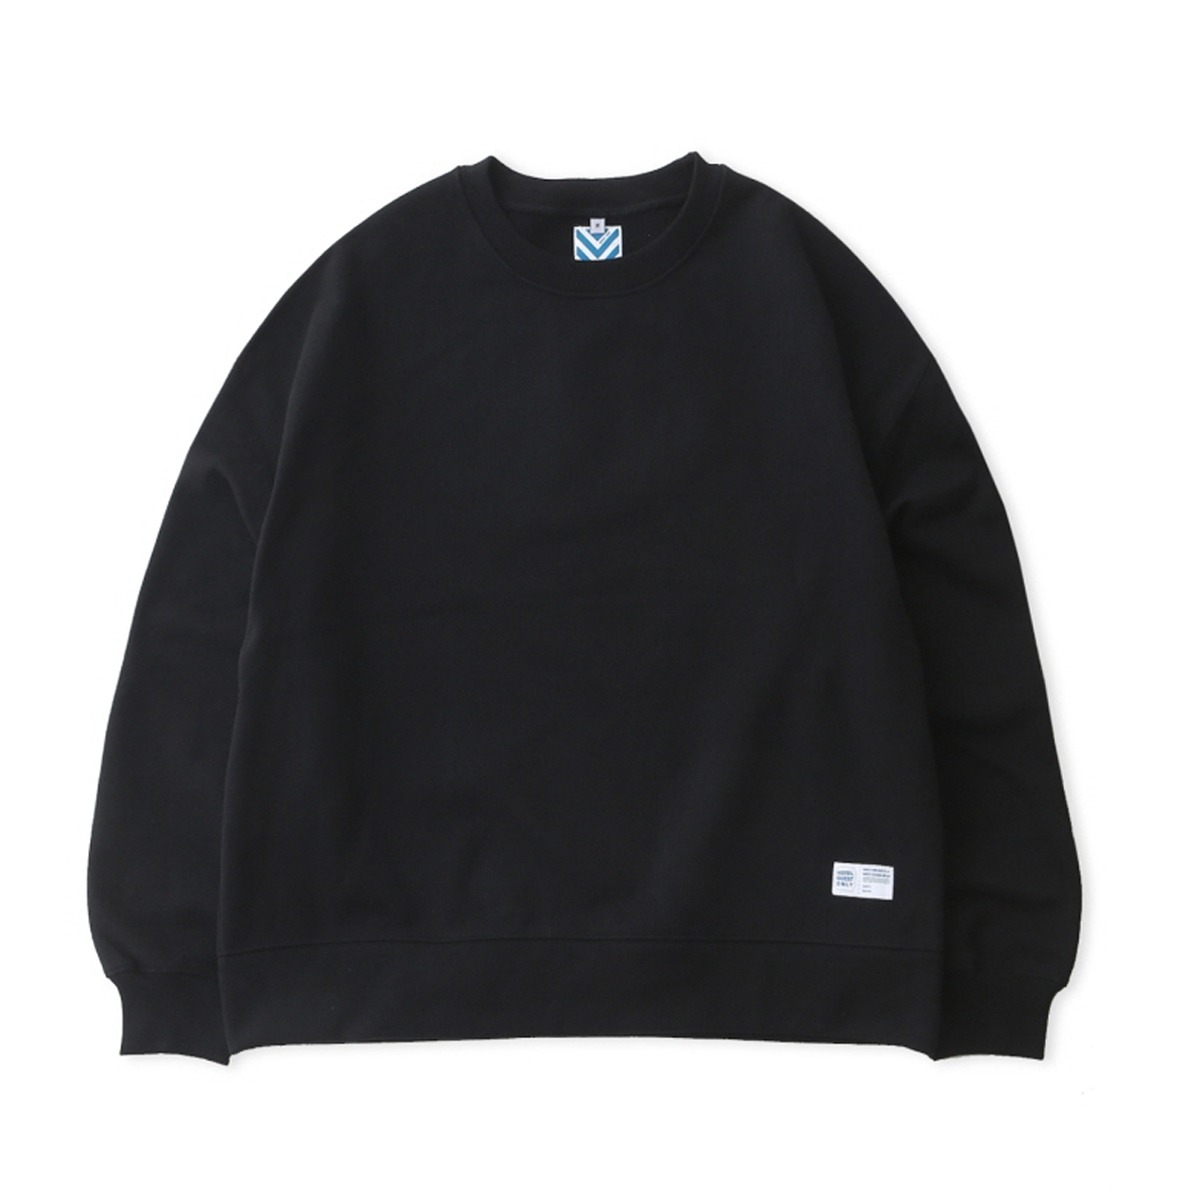 [DAILY INN] HOTEL SIGNATURE 970G SUPER HEAVY WEIGHT OVERSIZED SWEAT 'BLACK'